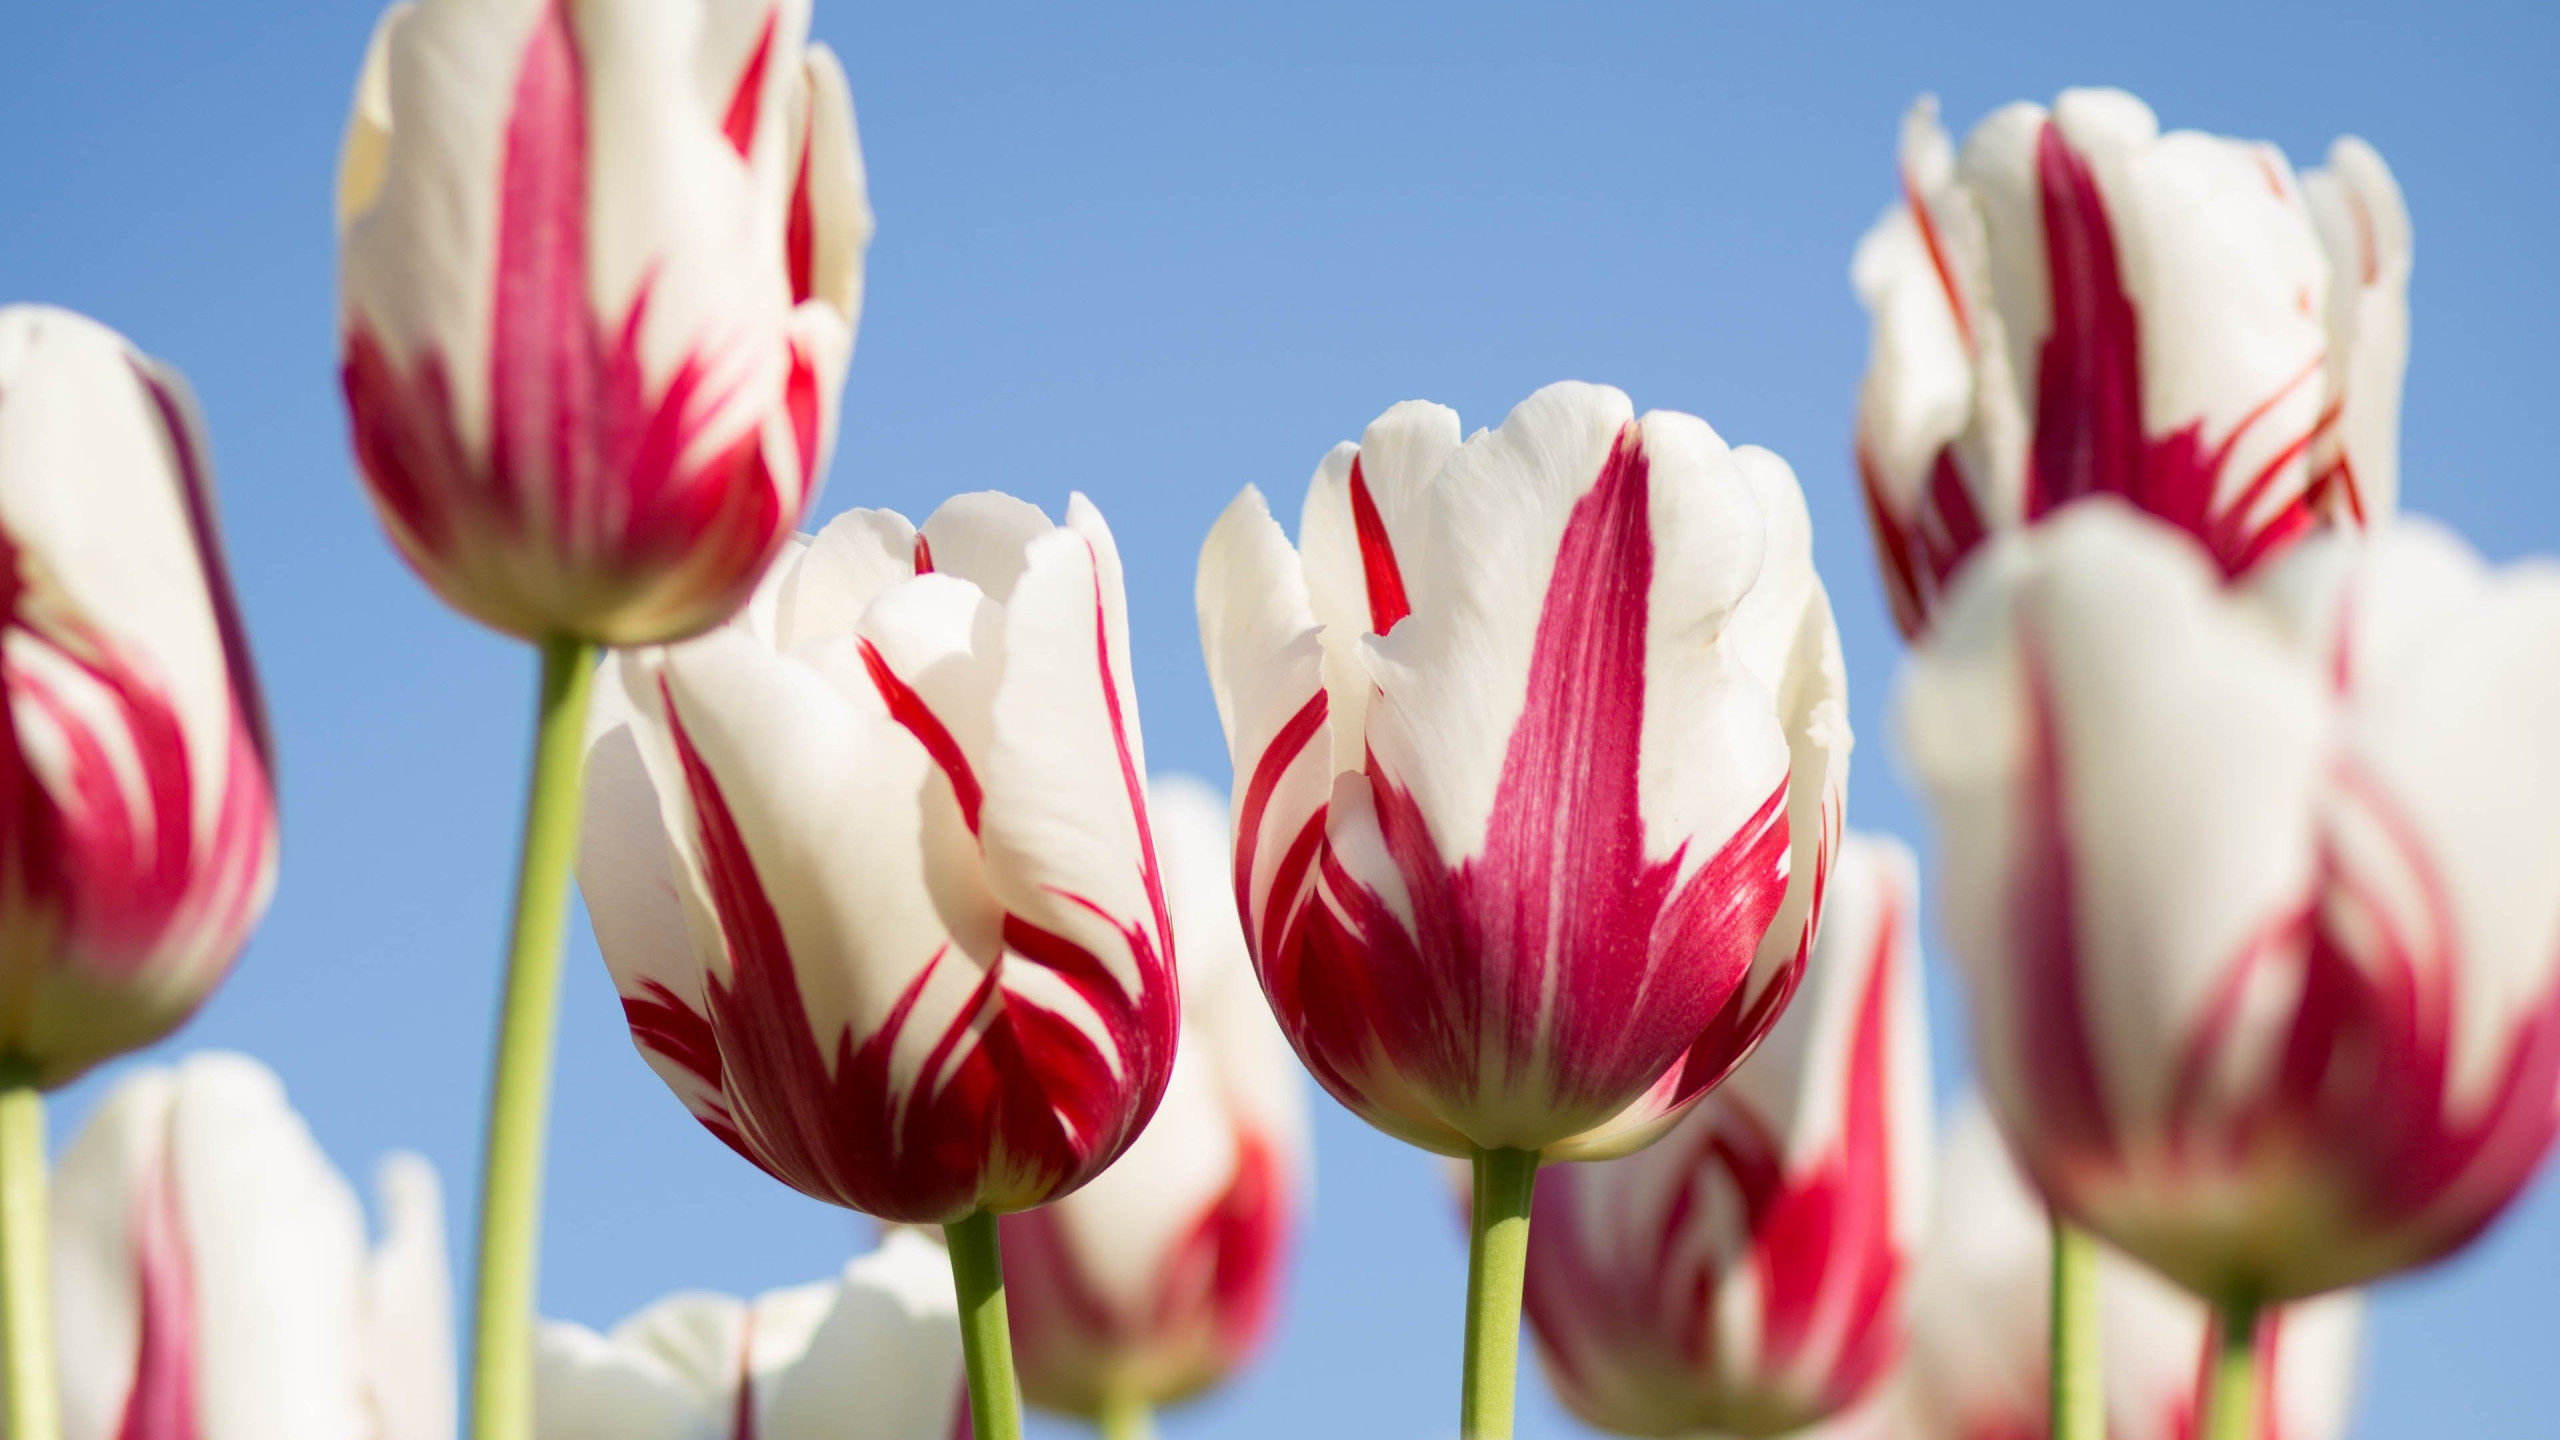 Red white tulips wallpaper 2560x1440